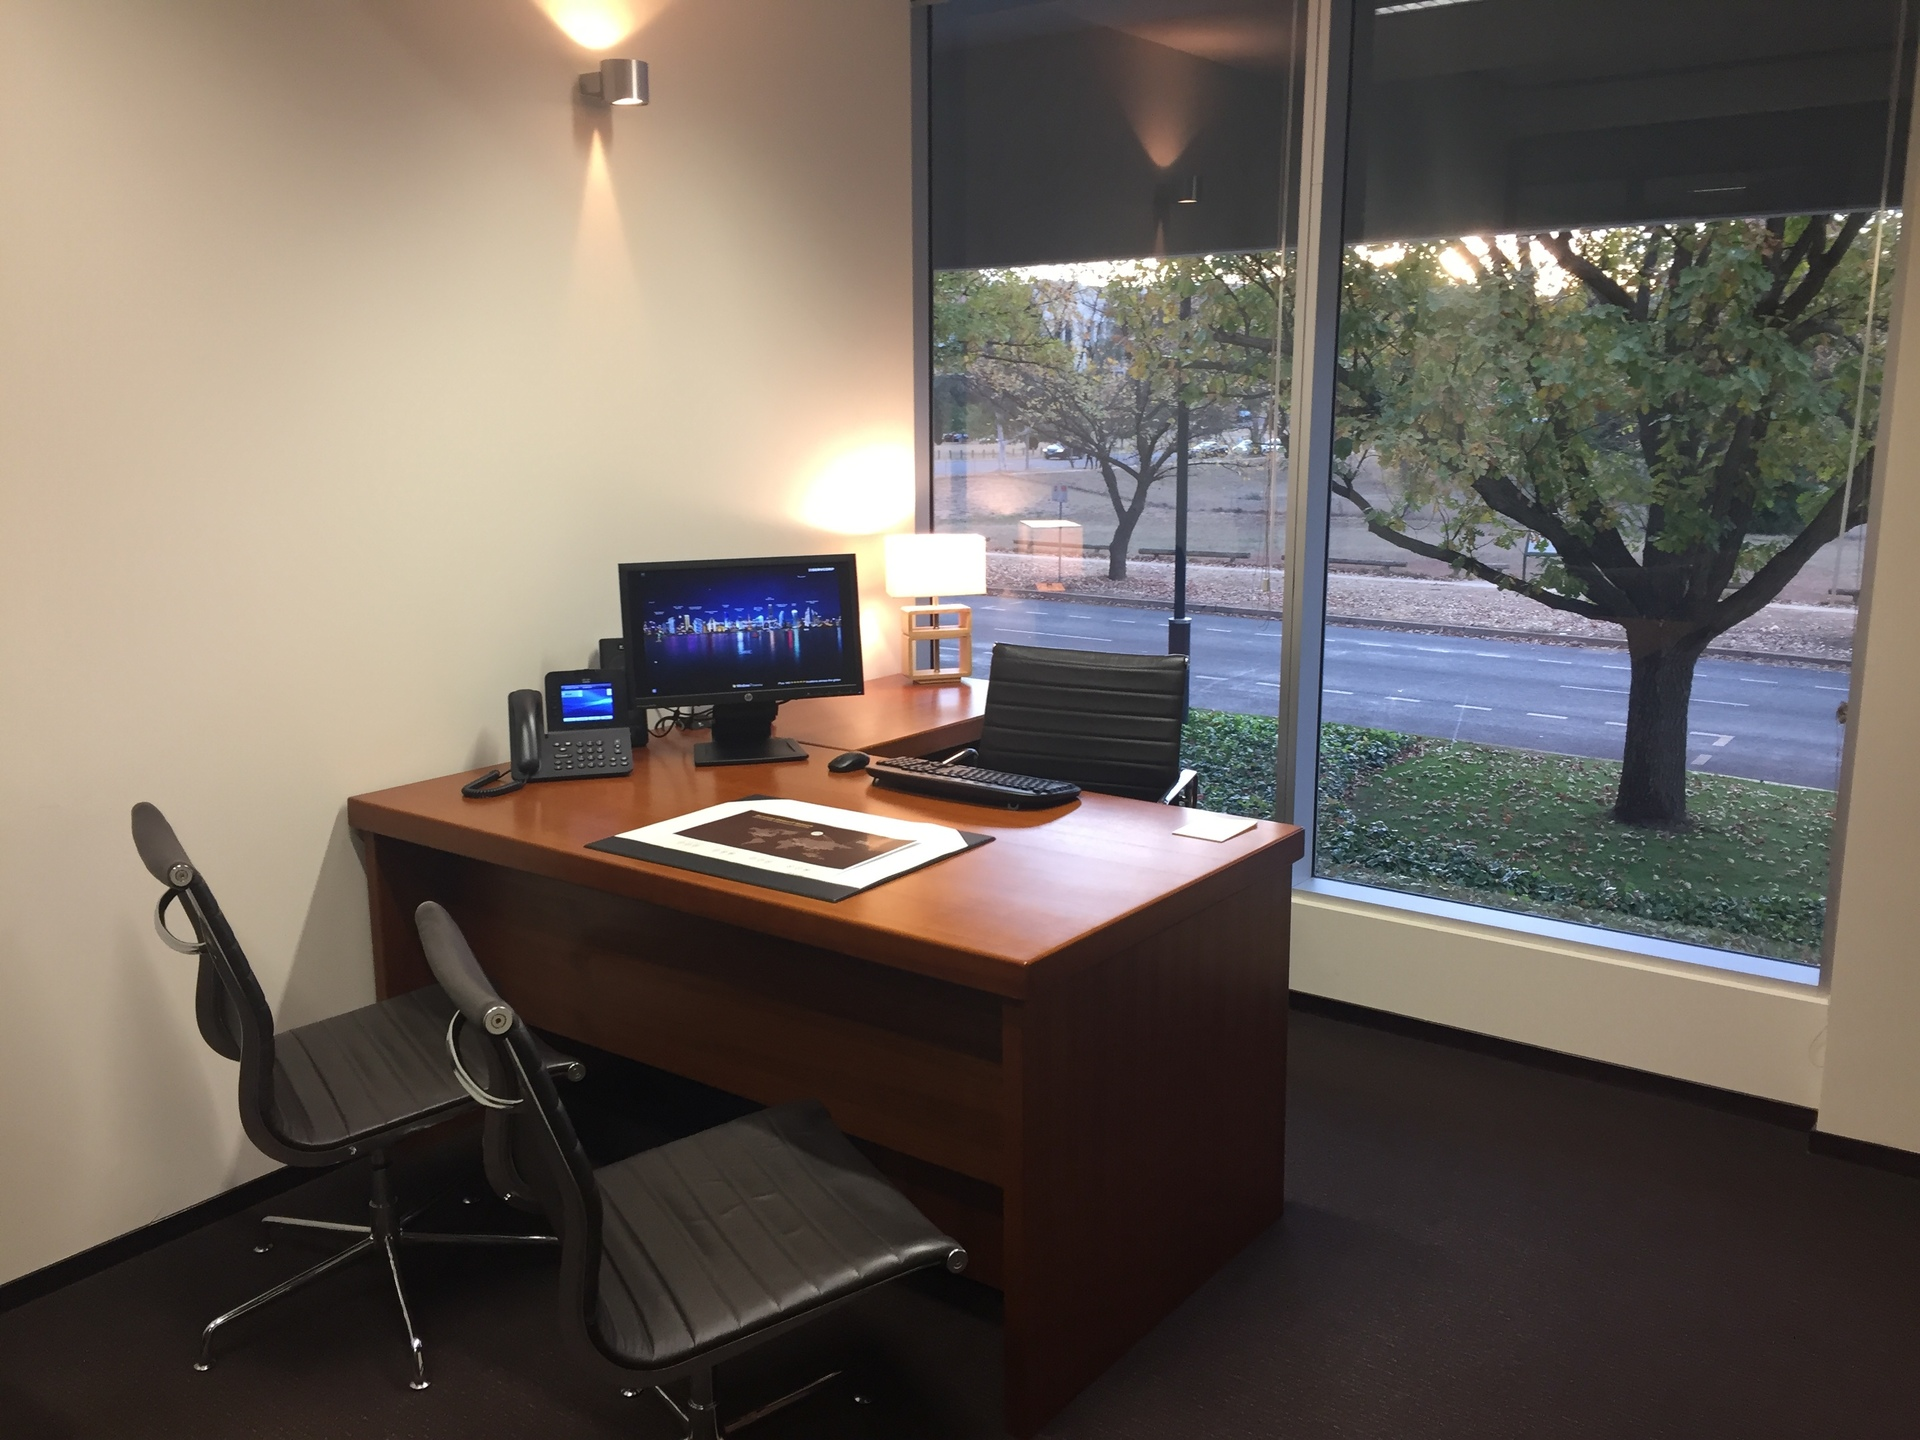 LAST CHANCE TO GET YOUR OFFICES SUITES IN THE REALM MOST RENOWED COMPLEX WITH WONDERFUL VIEWS